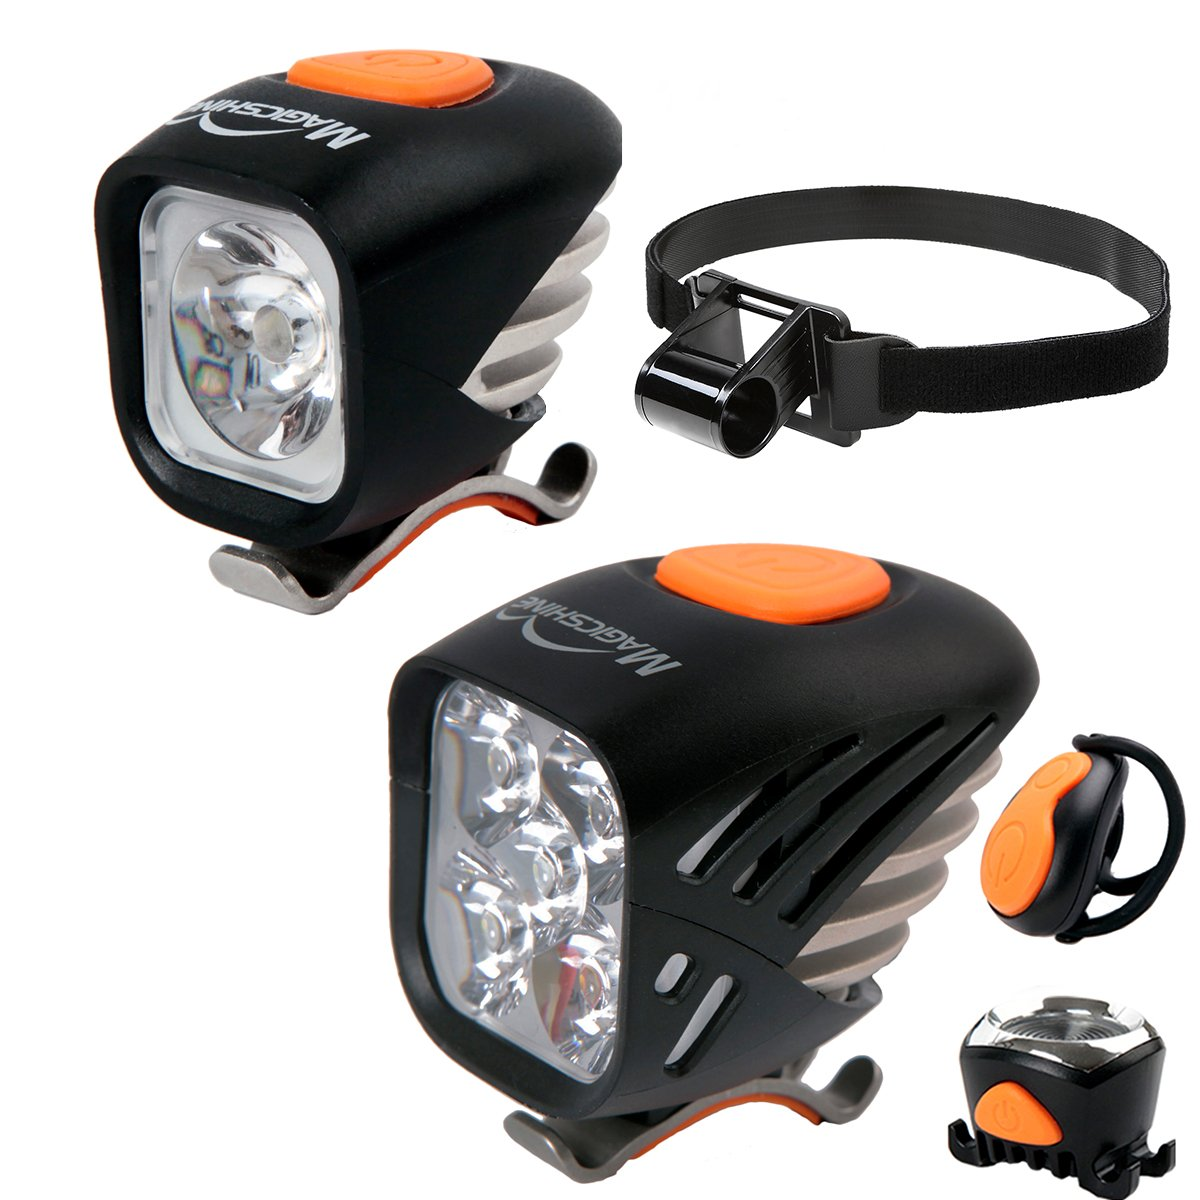 Magicshine Extreme MTB Enduro LED Bicycle Lights, Mountain Bike Lights Combo, 5000 Max Lumen Handlebar Light, 1200 Max Lumen Cree Headlamp with Helmet Strap Enduro Trail Offroad by Magicshine